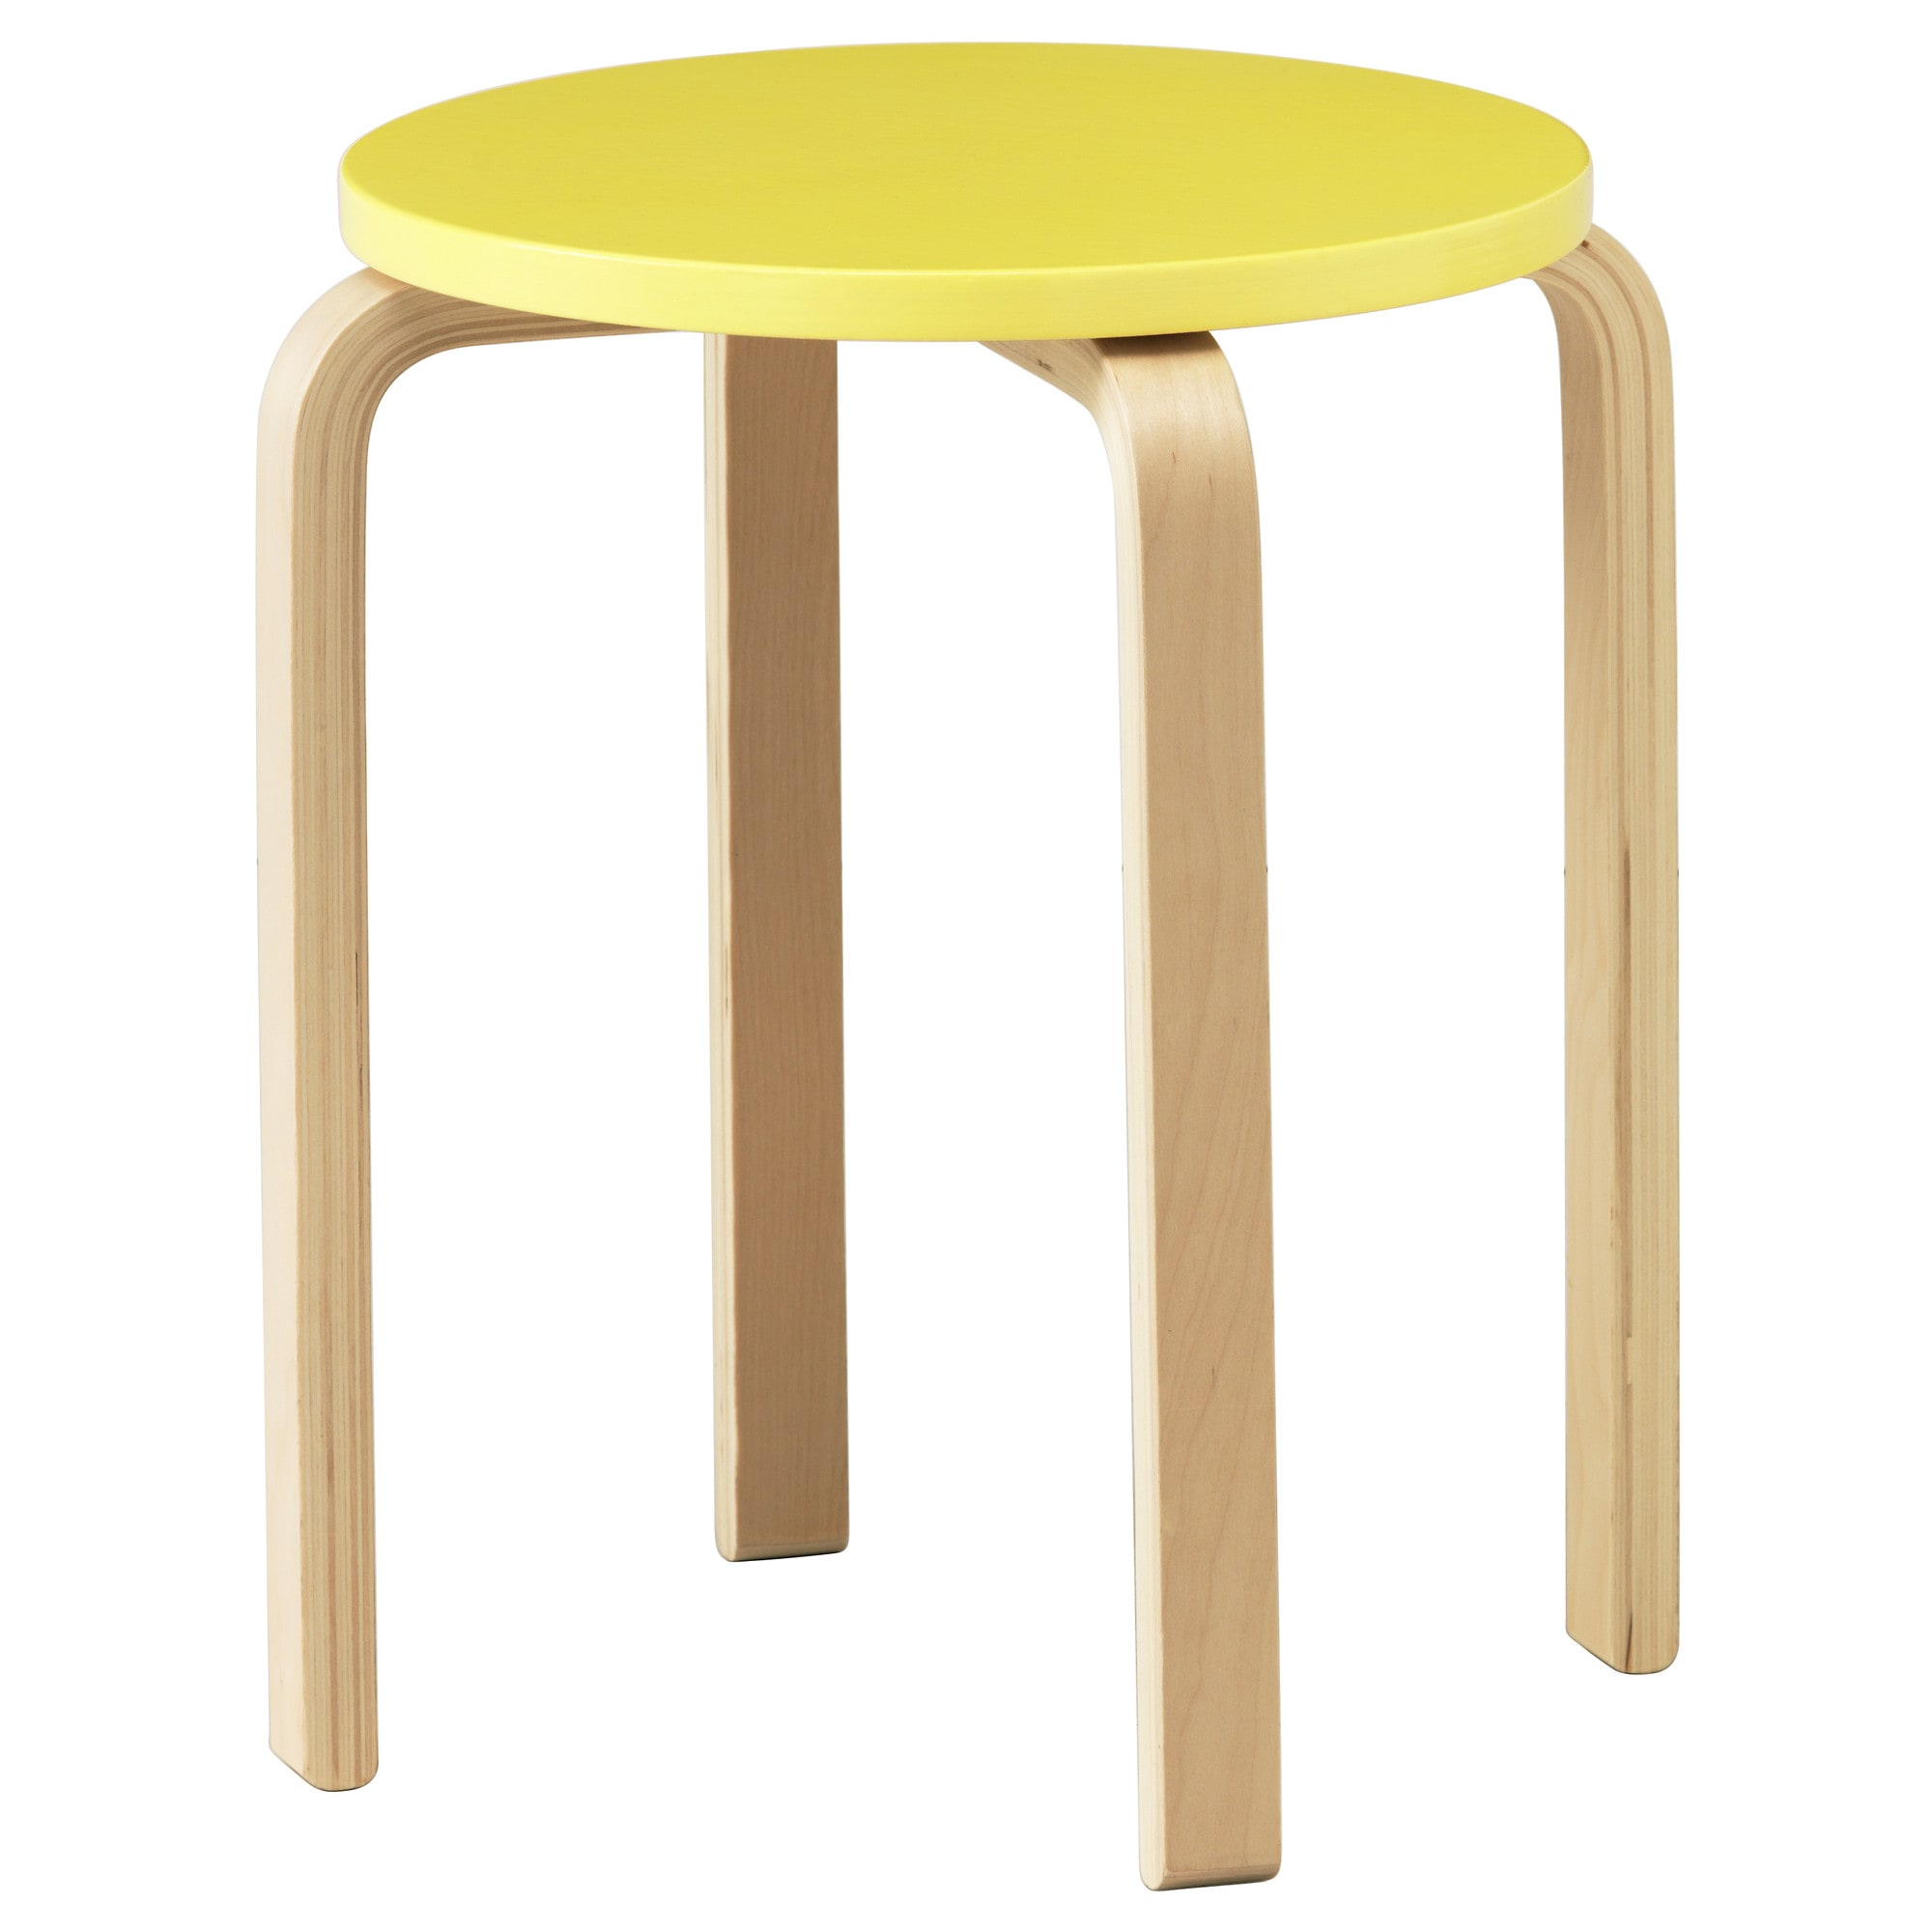 Stools & Benches - Chairs - IKEA